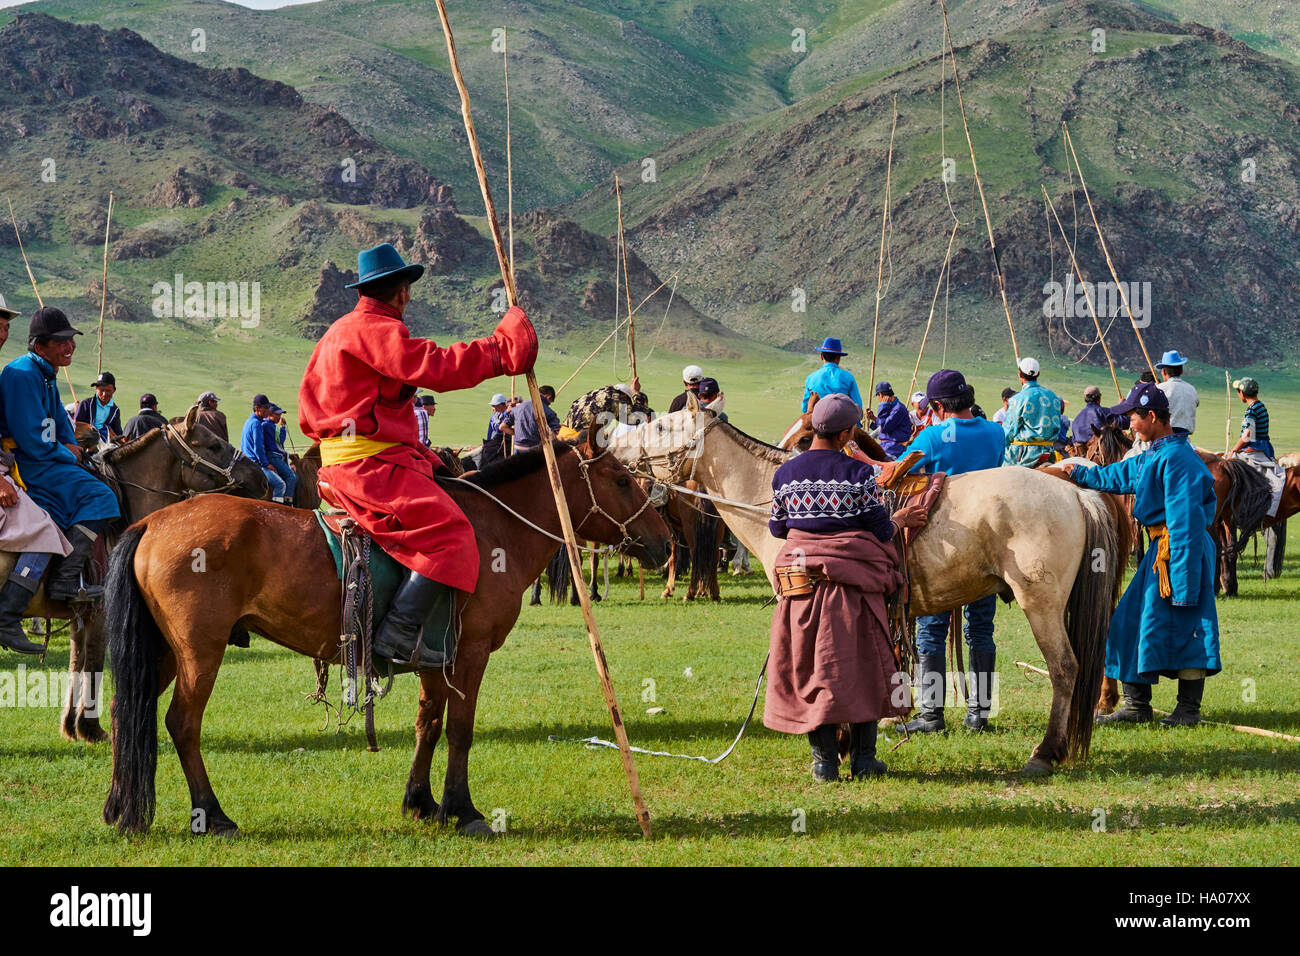 Mongolia, Bayankhongor province, Naadam, traditional festival, young nomad with their Urga - Stock Image